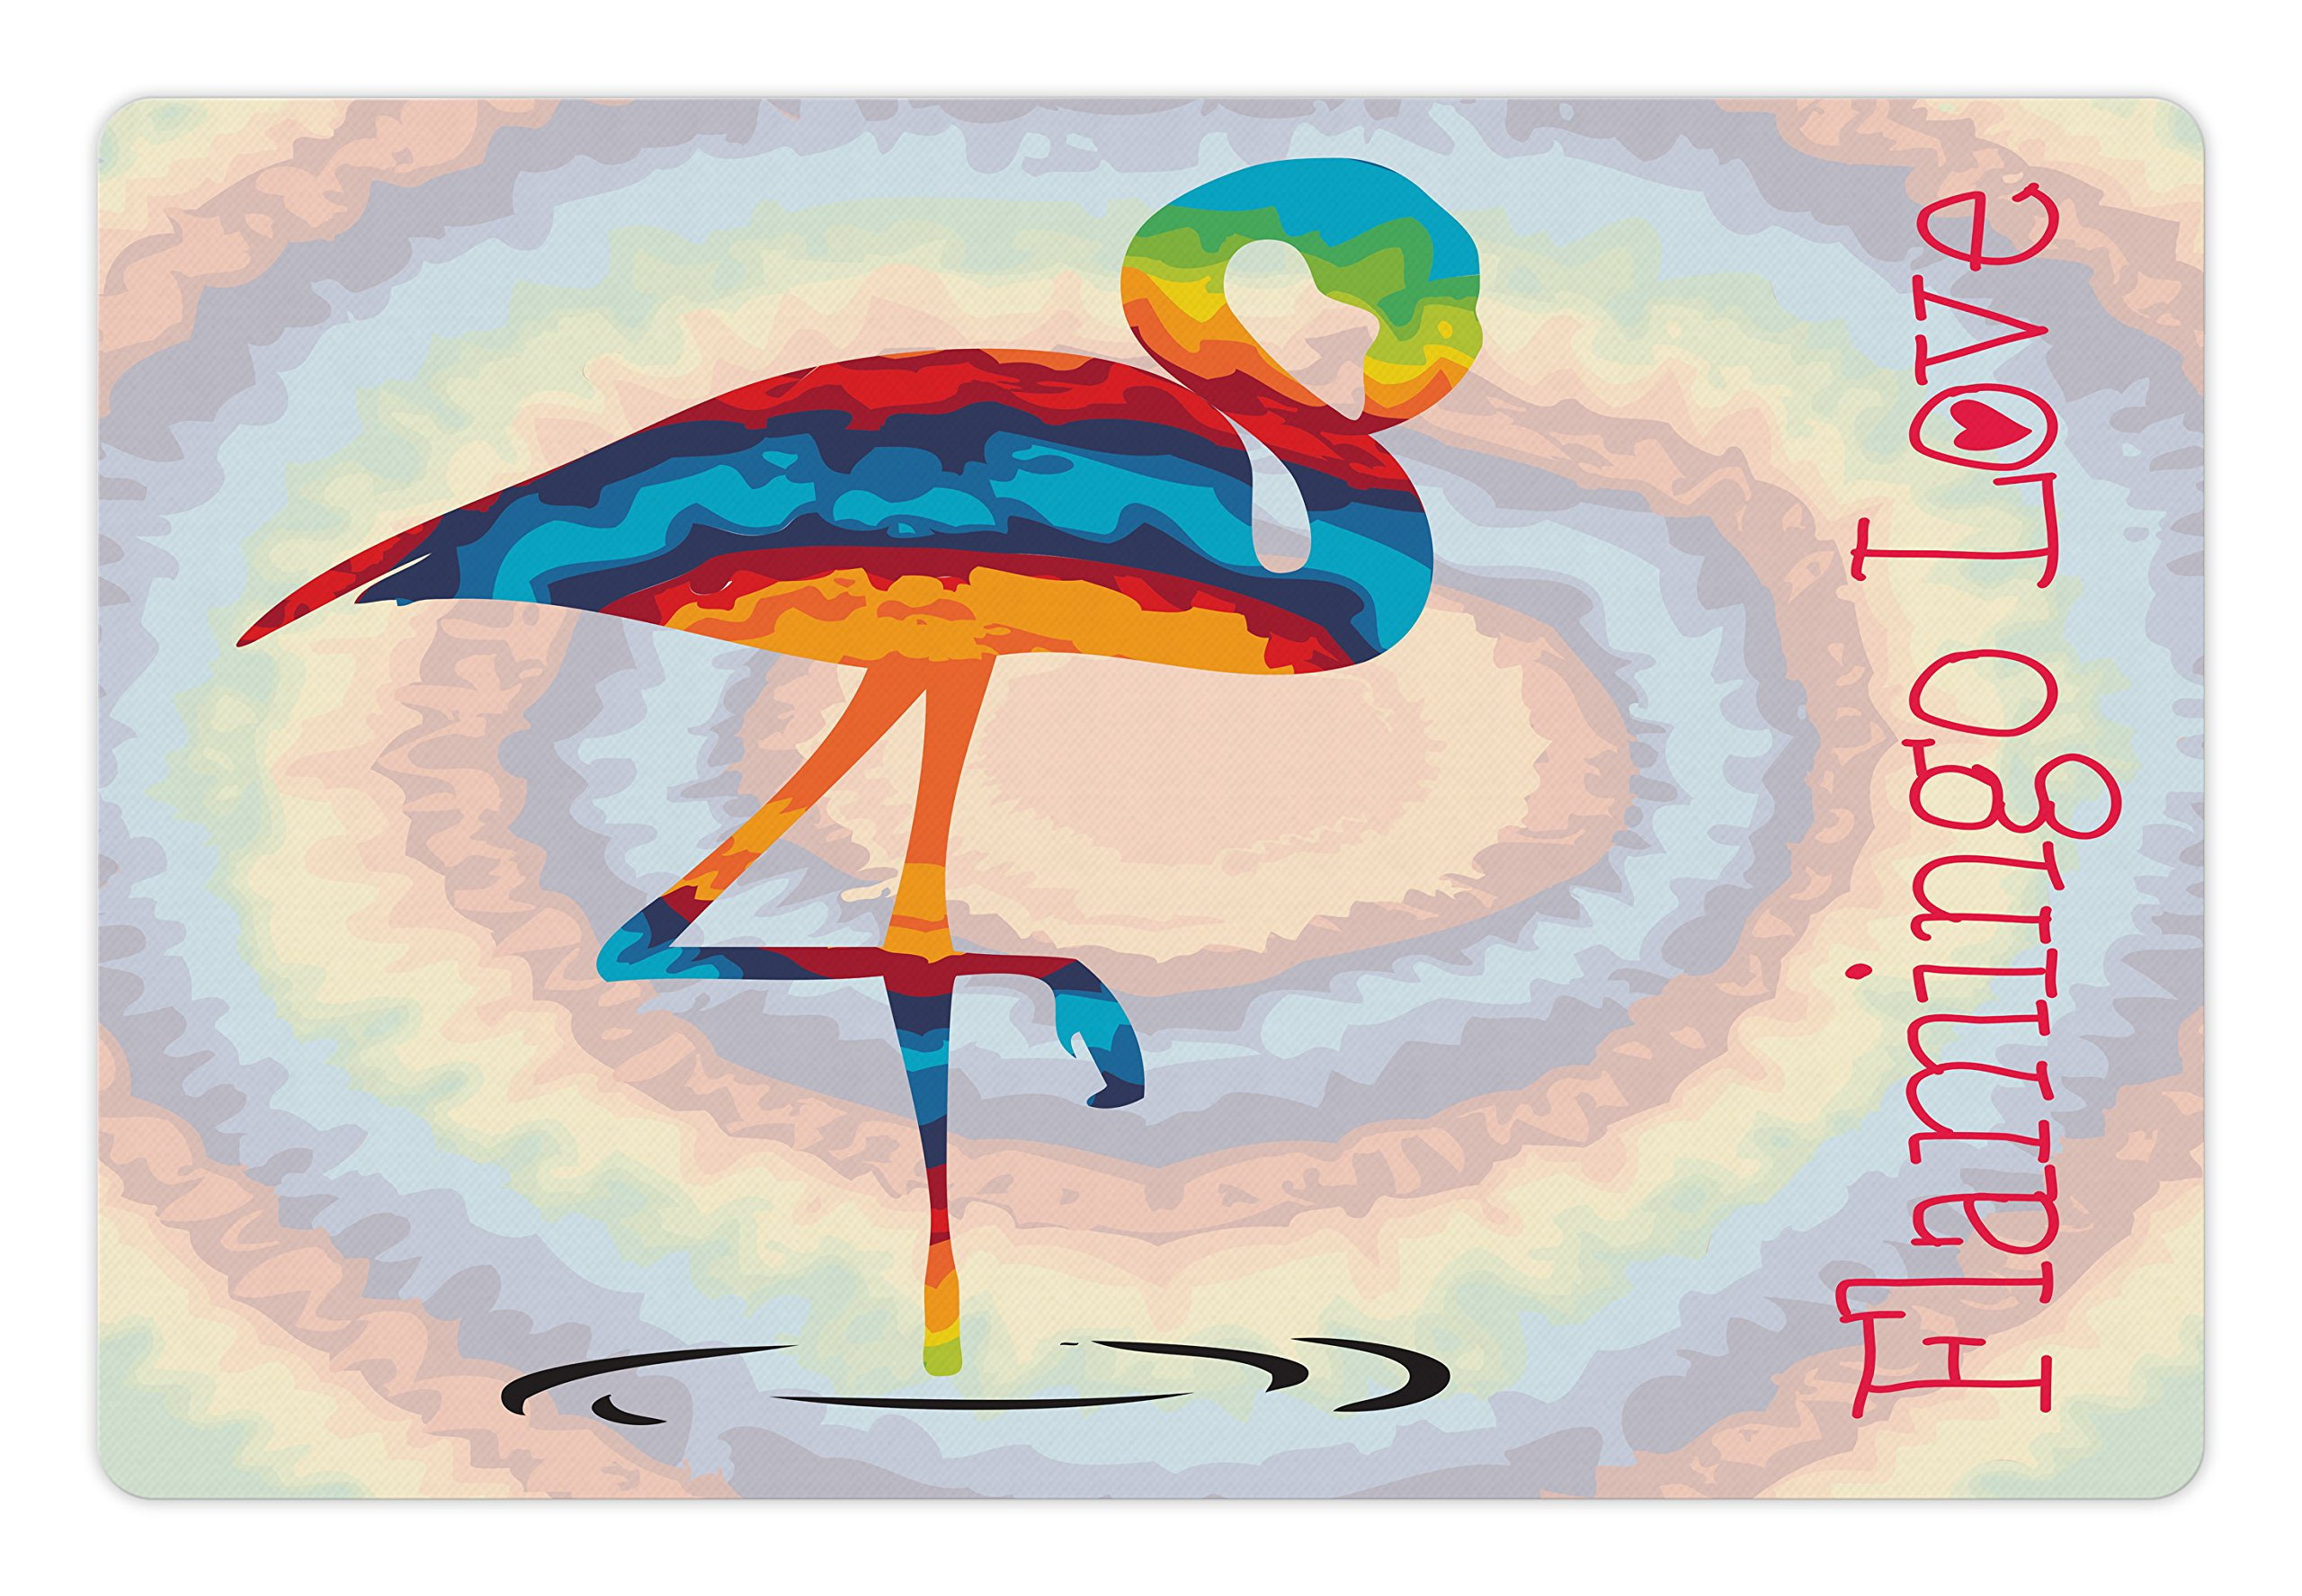 Ambesonne Flamingo Pet Mat for Food and Water, Single Flamingo Rainbow Colors Tie Dye Style Background Animal World Artwork Print, Rectangle Non-Slip Rubber Mat for Dogs and Cats, Multicolor